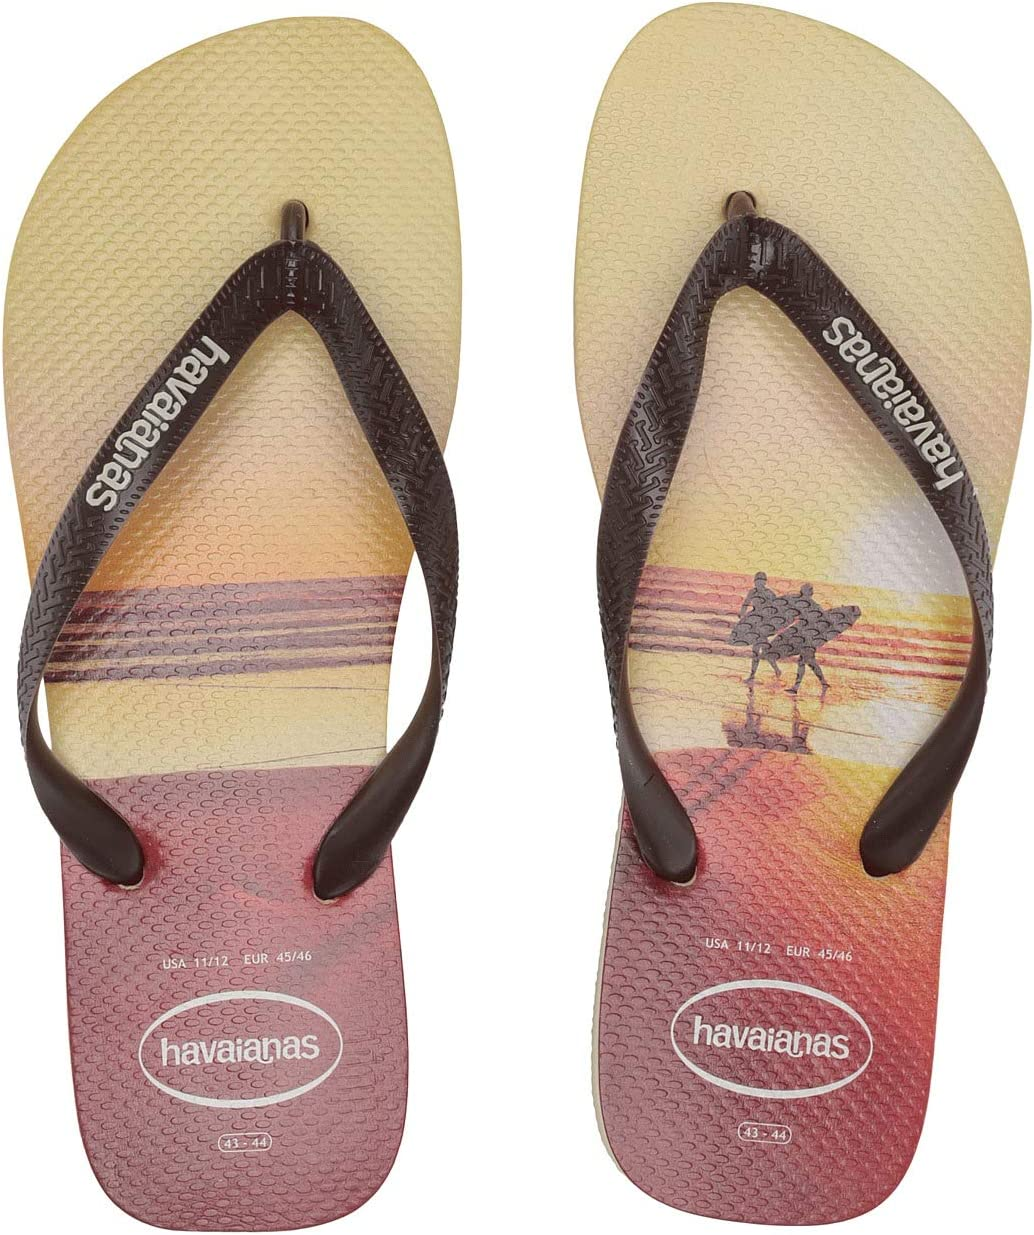 4a92dd713 Havaianas Shoes   Accessories